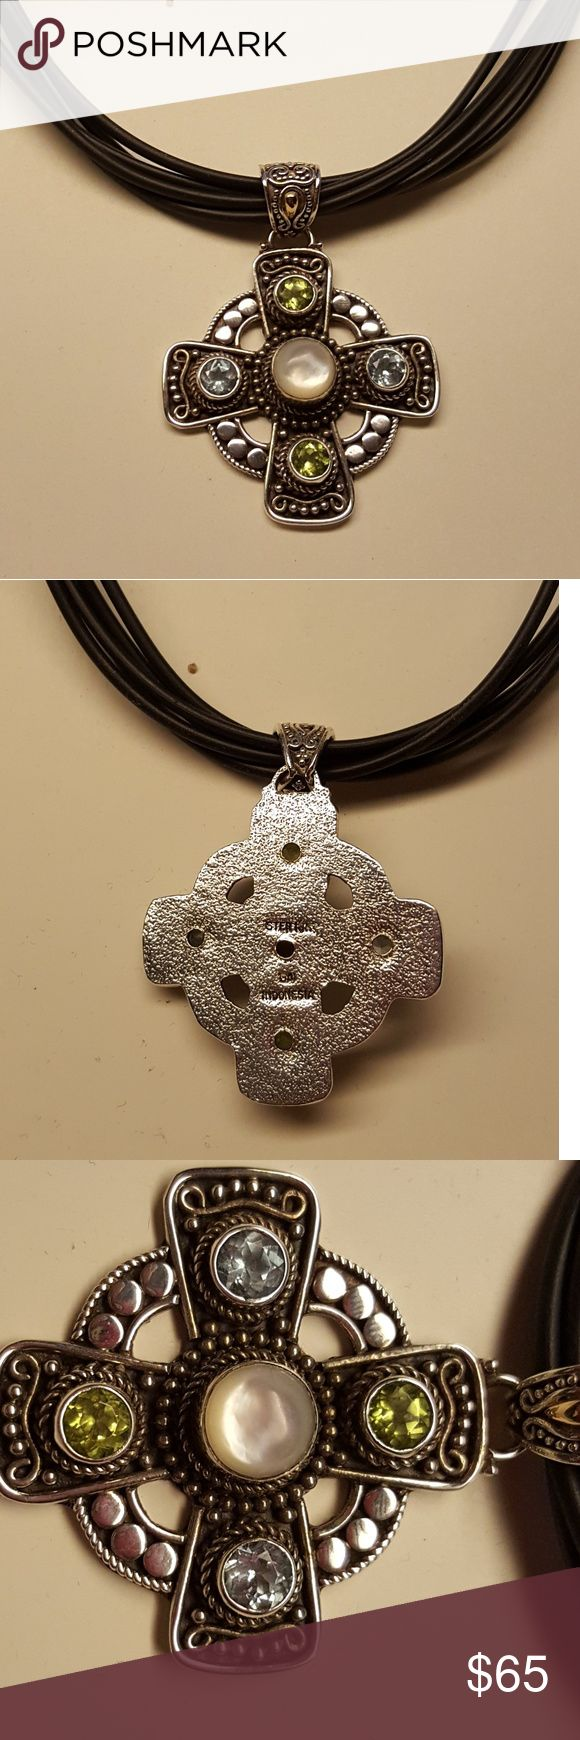 CELTIC CROSS W/LEATHER CORDS NECKLACE This beautiful Celtic cross comes with a larger moon stone centerpiece with 2 moonstone side stones and 2 praseolite side Stones  This pendant stands for strength. Leather cord included with 4 inch extender. QVC Jewelry Necklaces